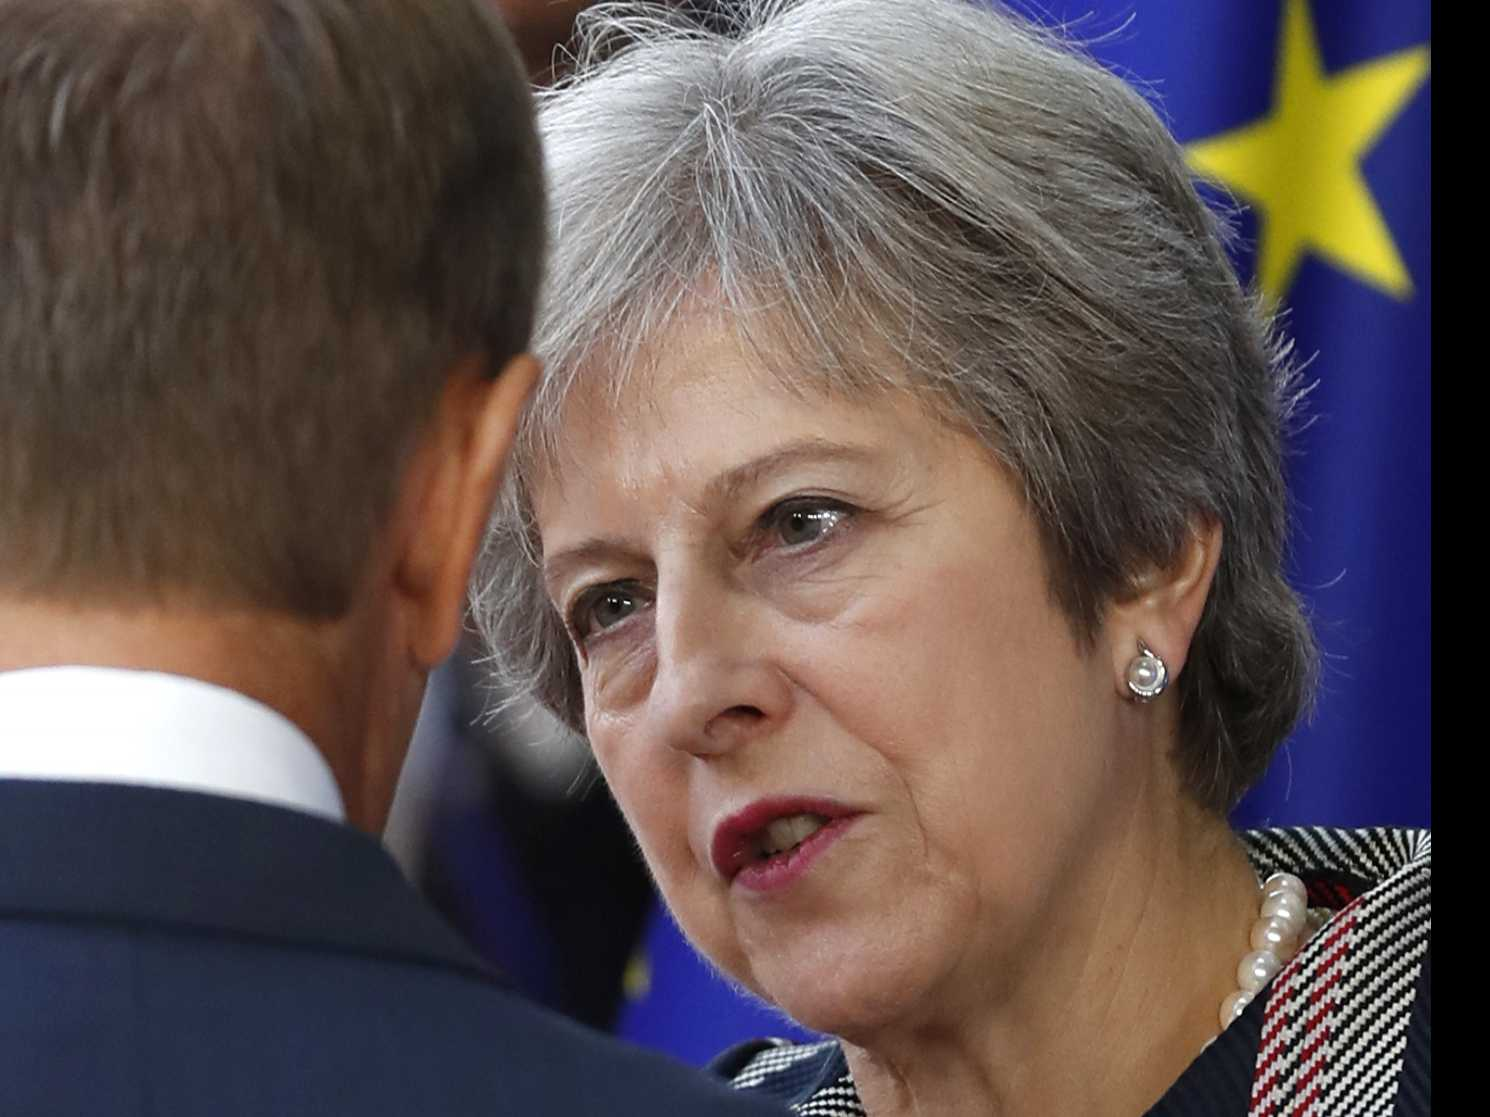 UK's May Pleads for Support, Says Brexit Deal is Almost Done